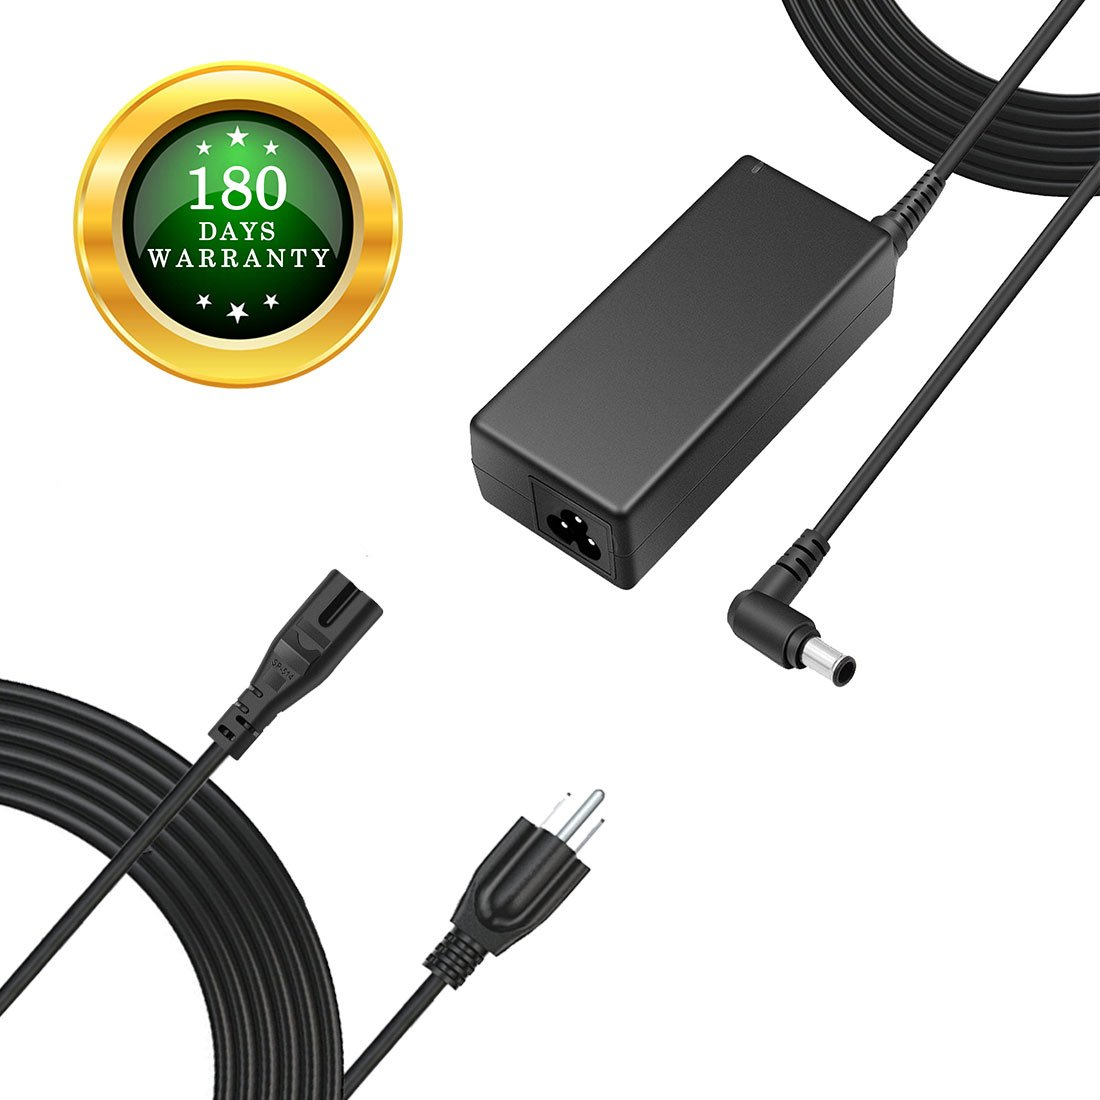 """For Insignia 12V LED HDTV HD TV DVD Power Cord Charger Replacement Adapter for 19"""" 20"""" 24"""" 28"""" 32"""" Power Supply, 12V, AC, DC, 8.5Ft."""